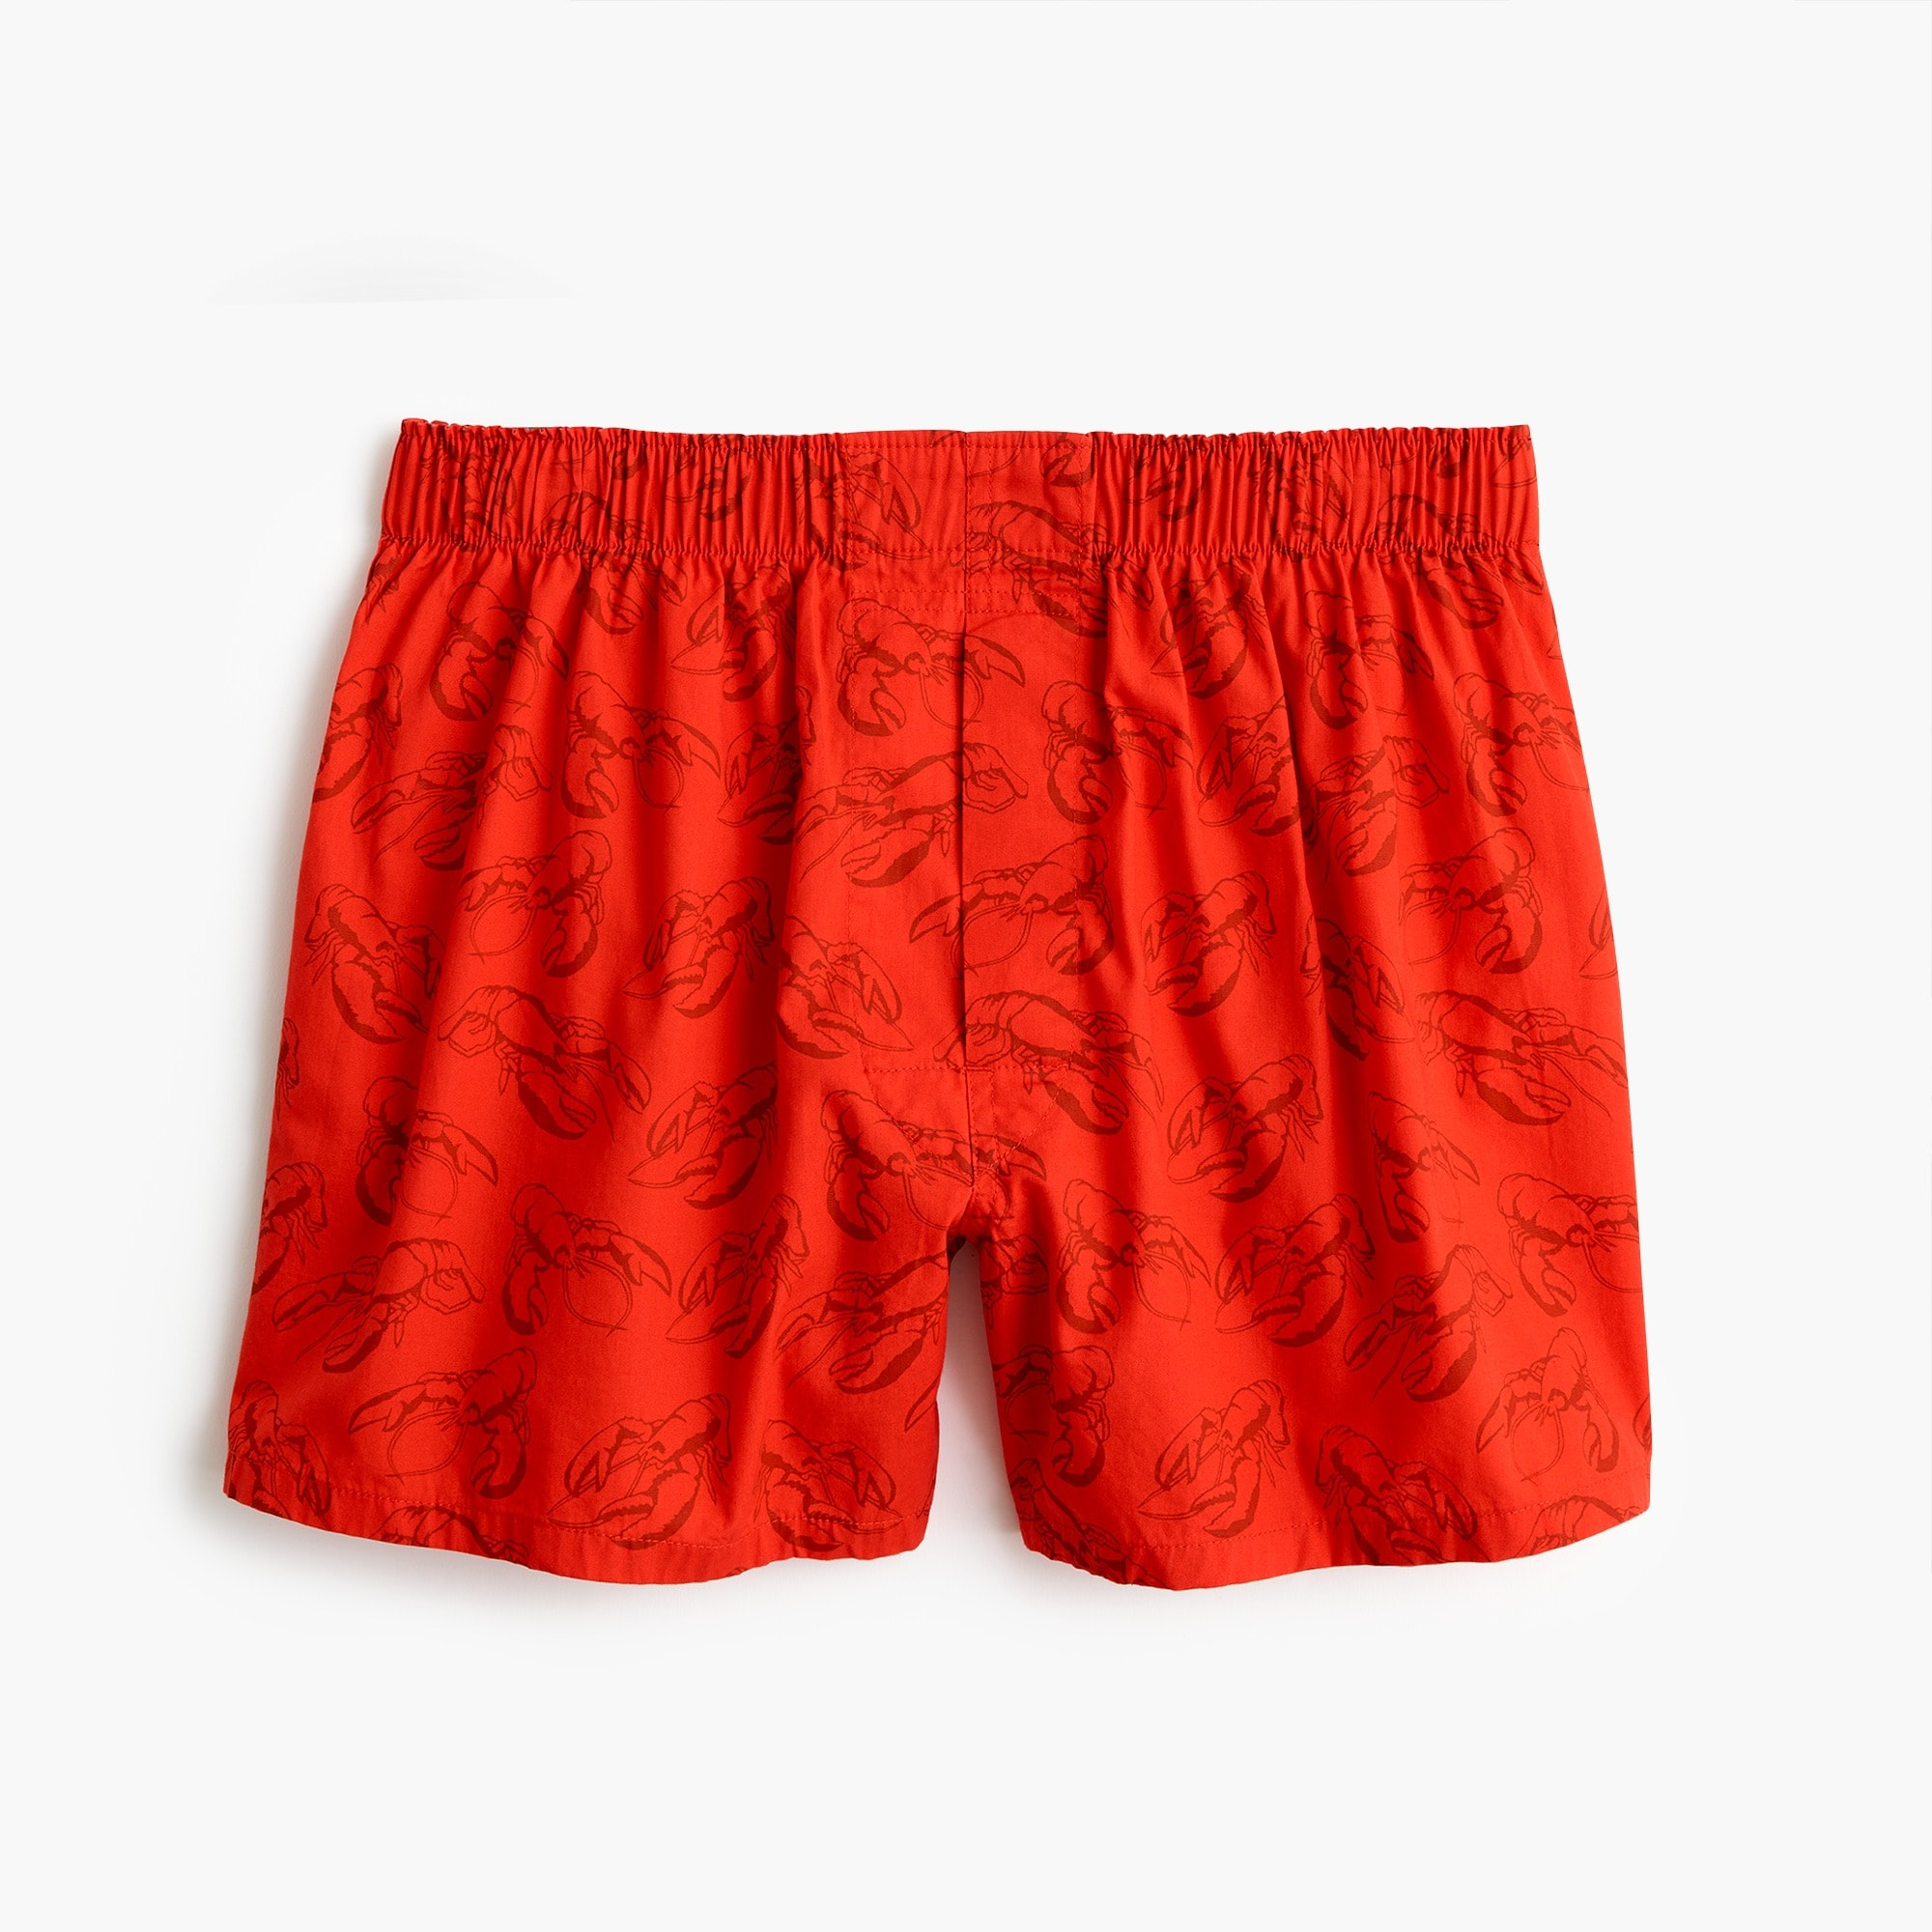 mens Red lobster print boxers